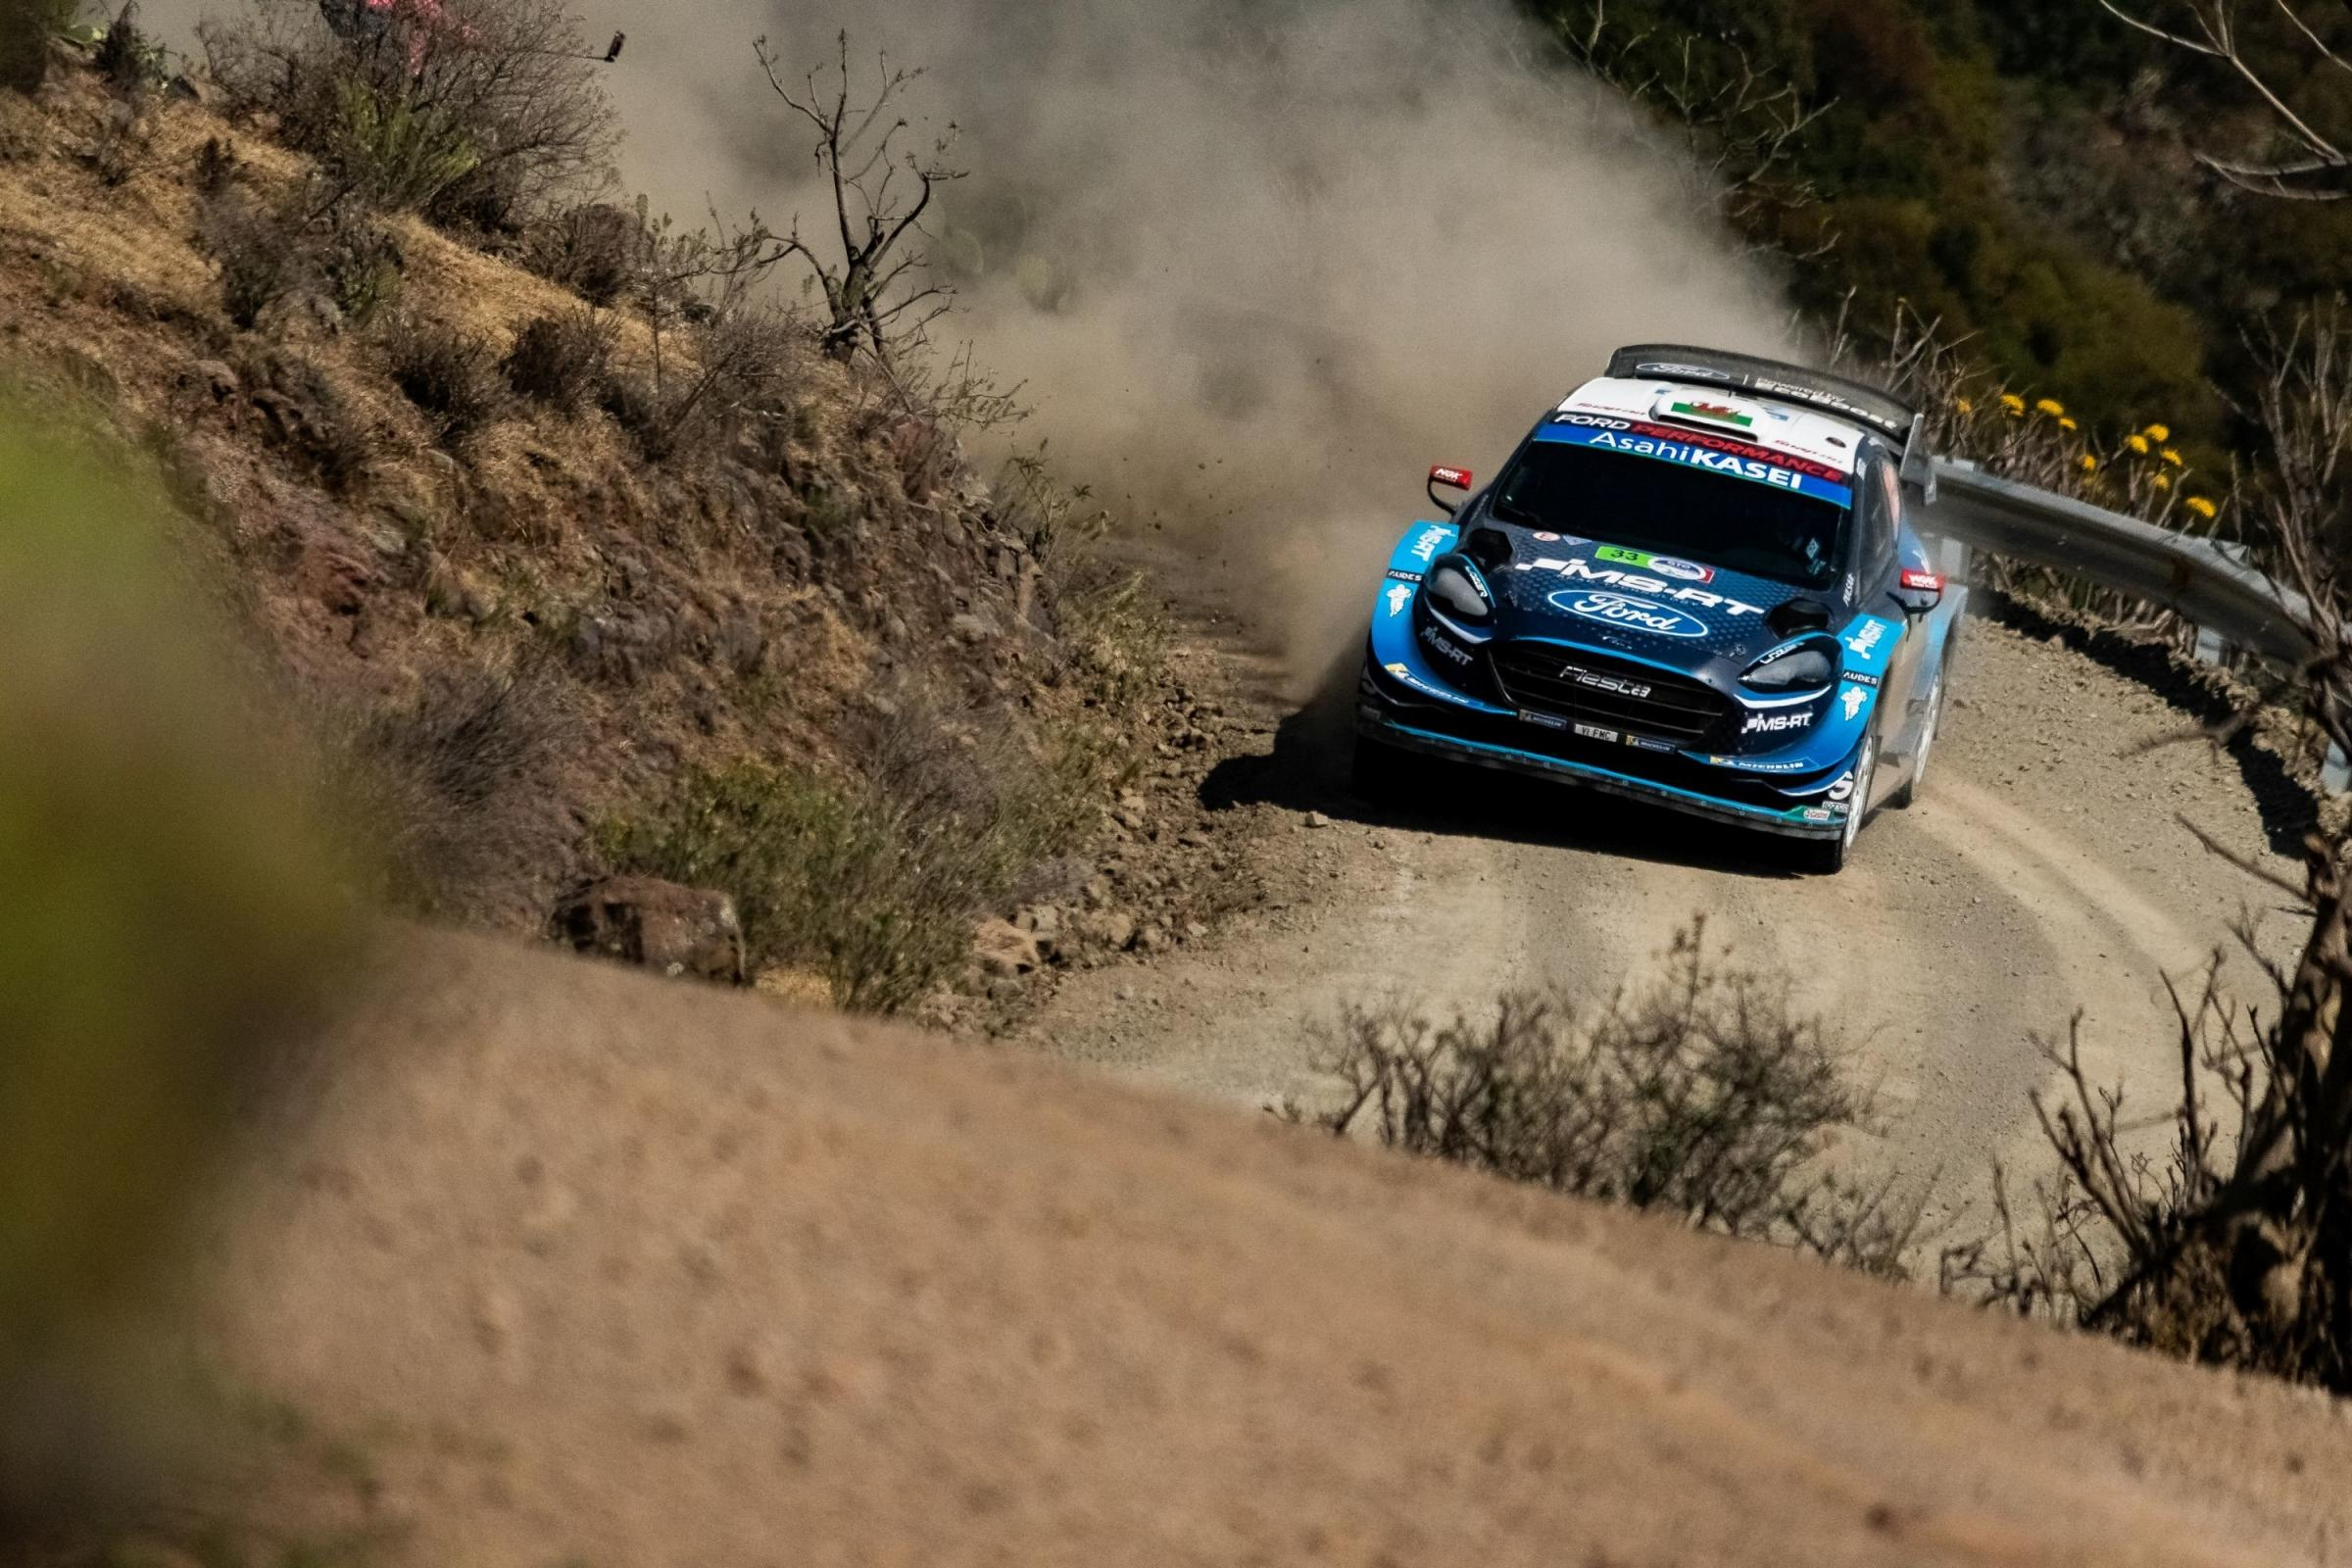 Third place: Elfyn Evans and Scott Martin on their way to a podium finish in Mexico (Photo: Daniel Aguilera)